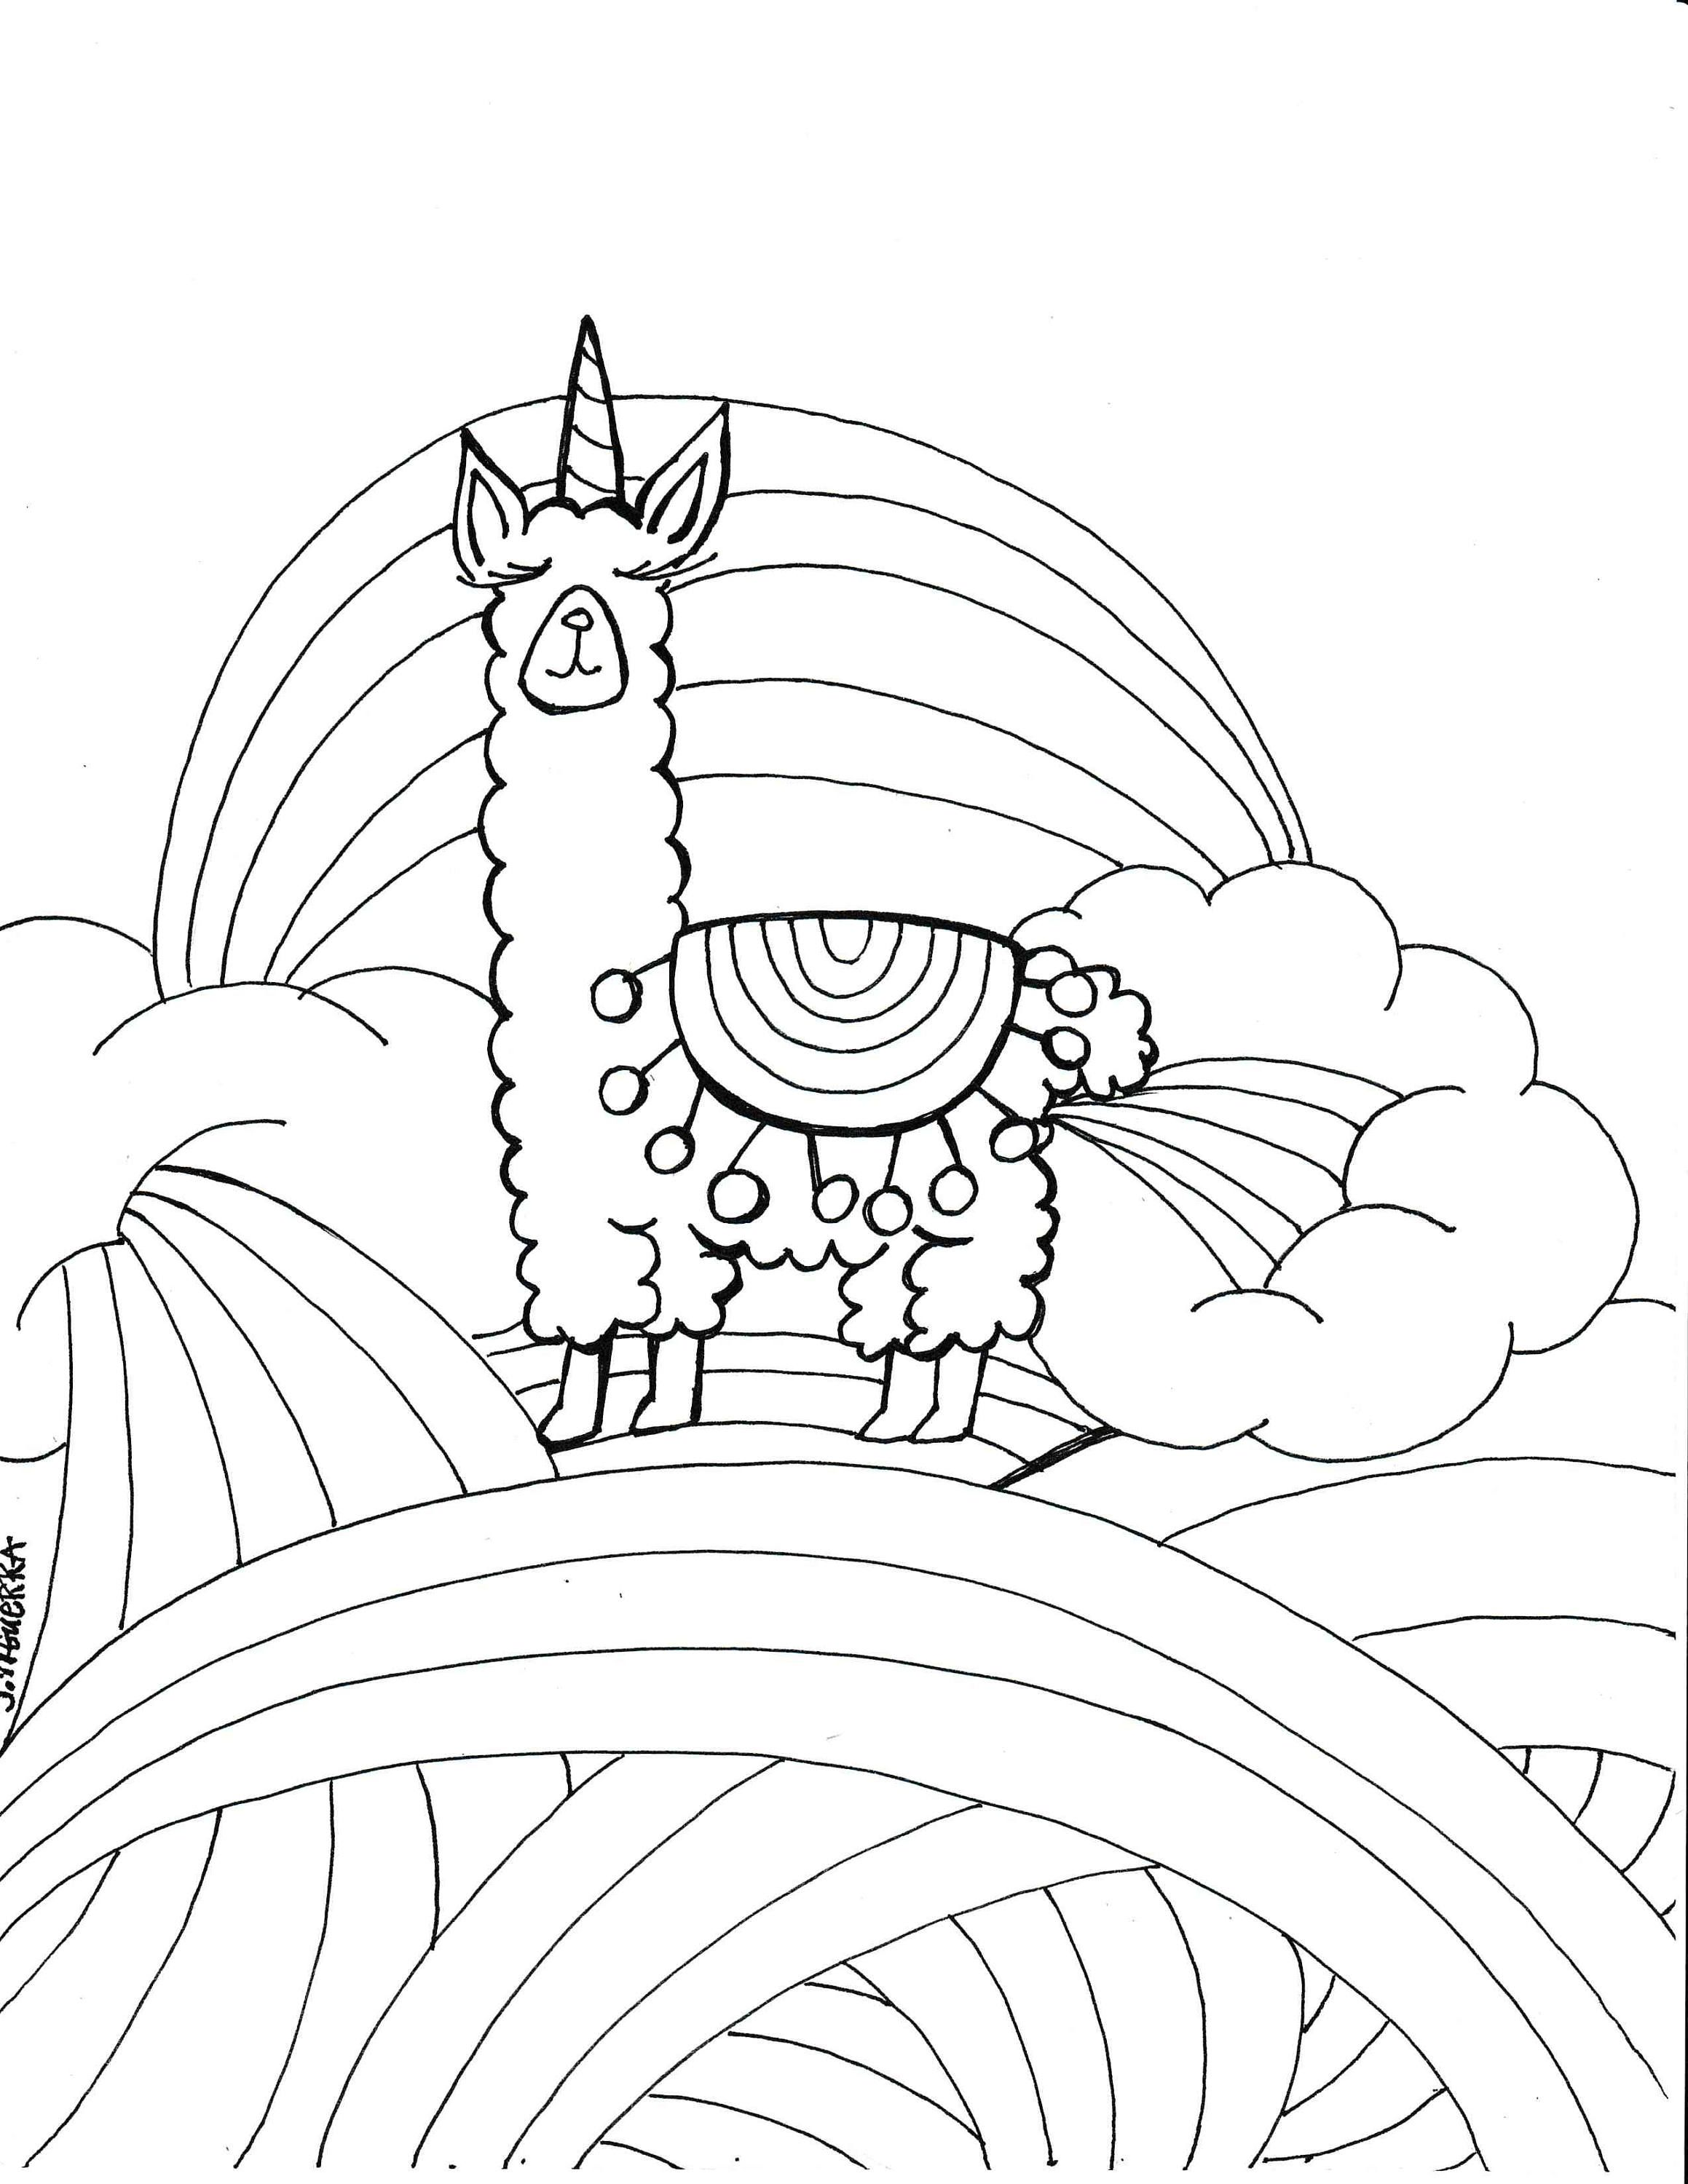 Llamacorn coloring page PDF printable art by Journalingart ...